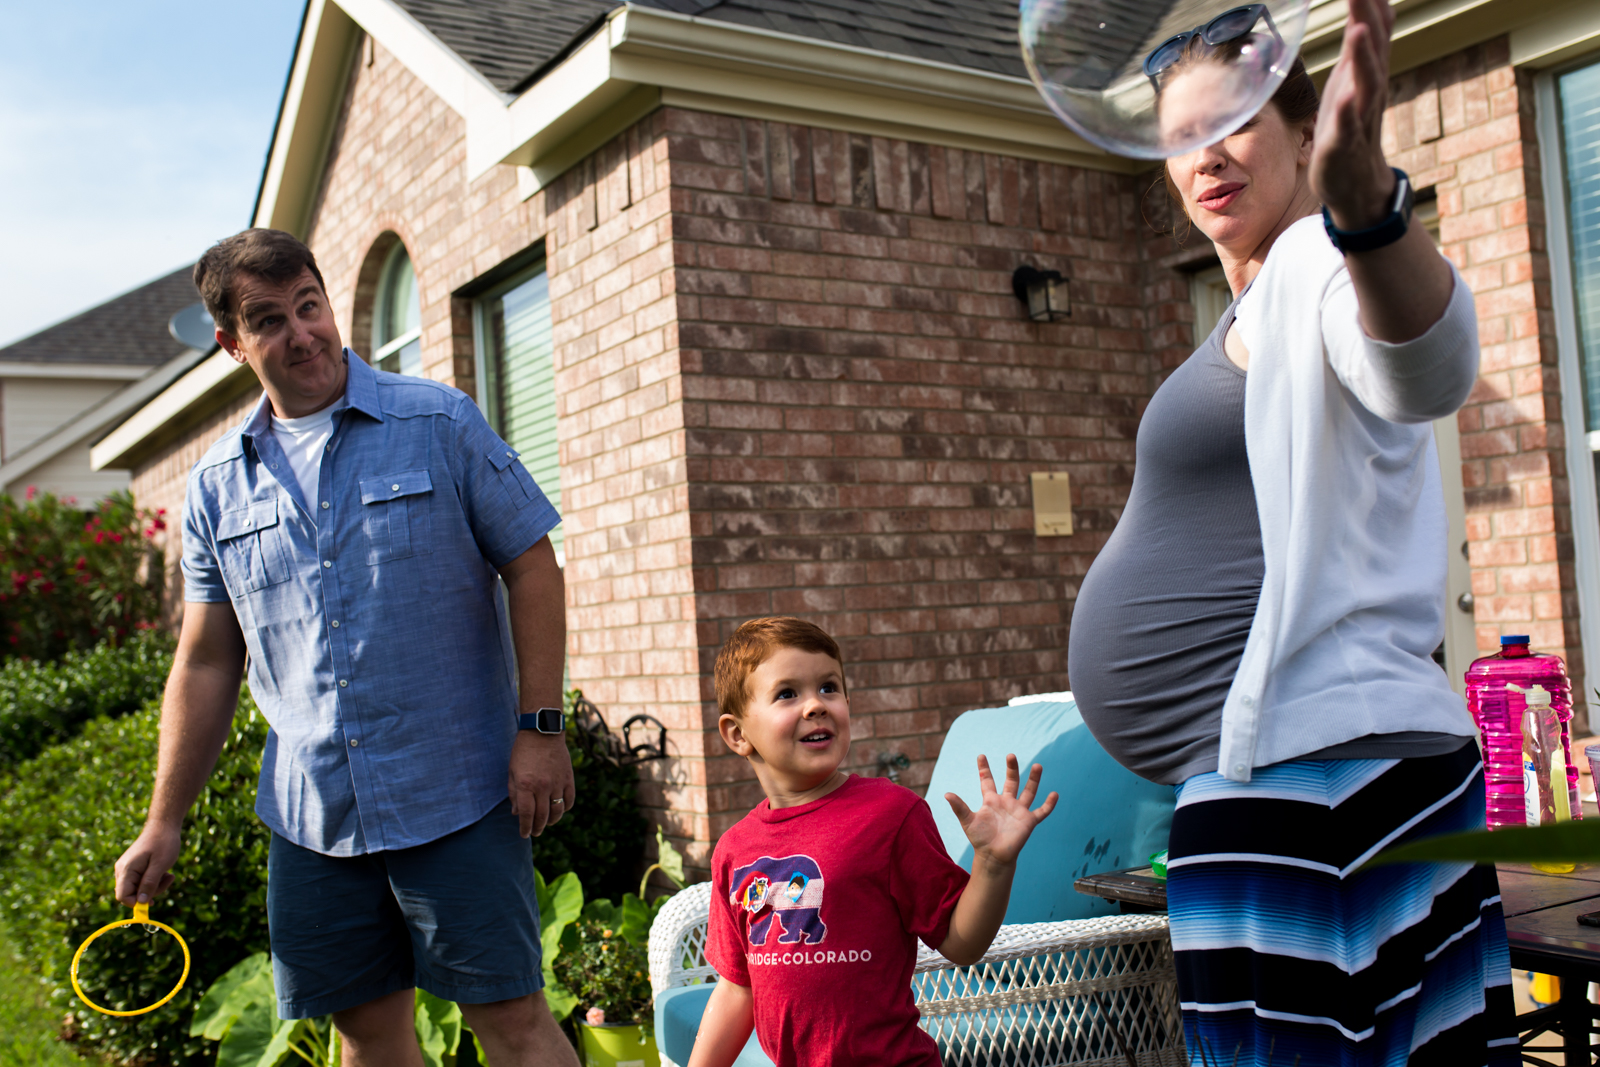 McKinney Photographer Lawren Rose Photography captures a photo of a family of 3 outside in their backyard blowing giant bubbles